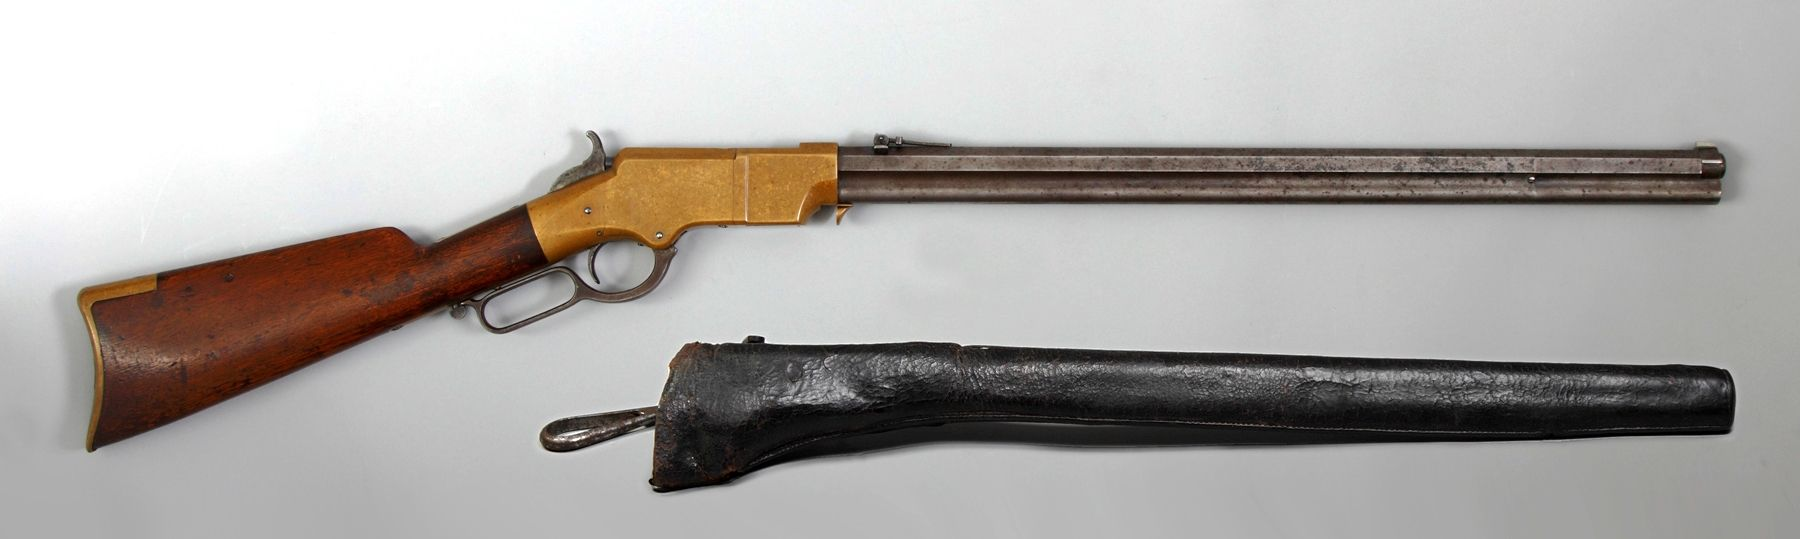 how to clean henry rifle